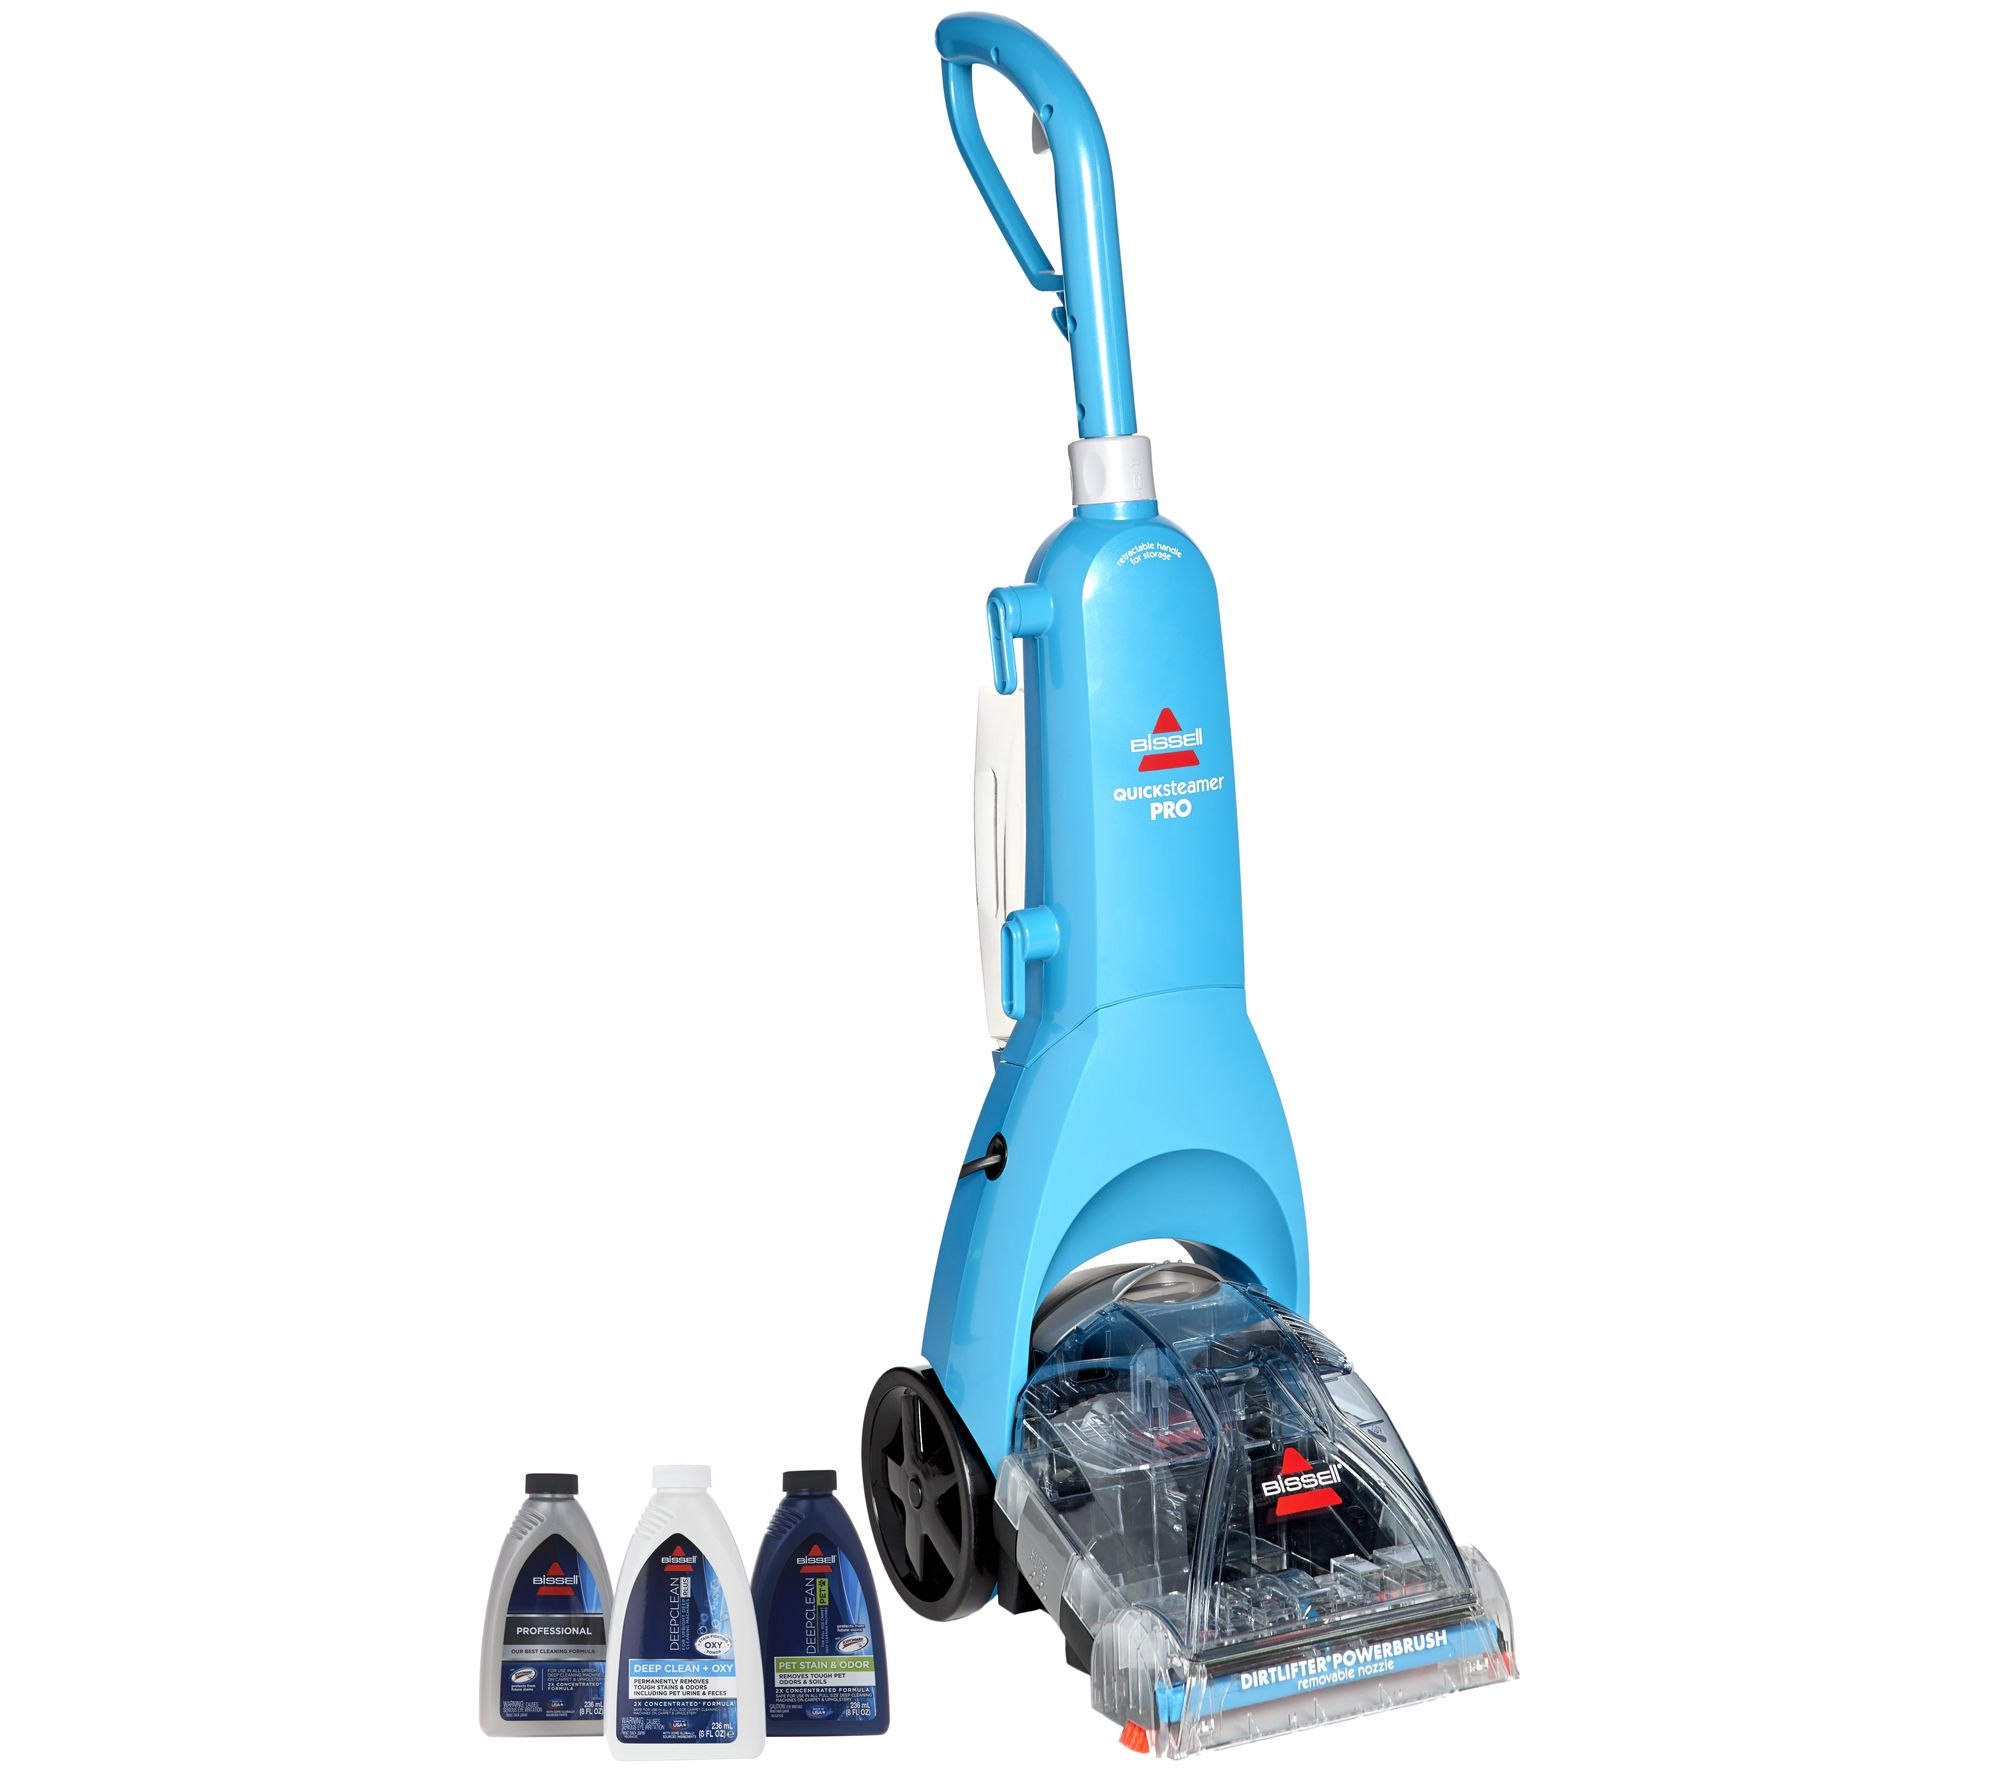 Bissell Quicksteamer Pro Deep Clean Carpet Cleaner W/ 3 Formulas   Page 1 U2014  QVC.com